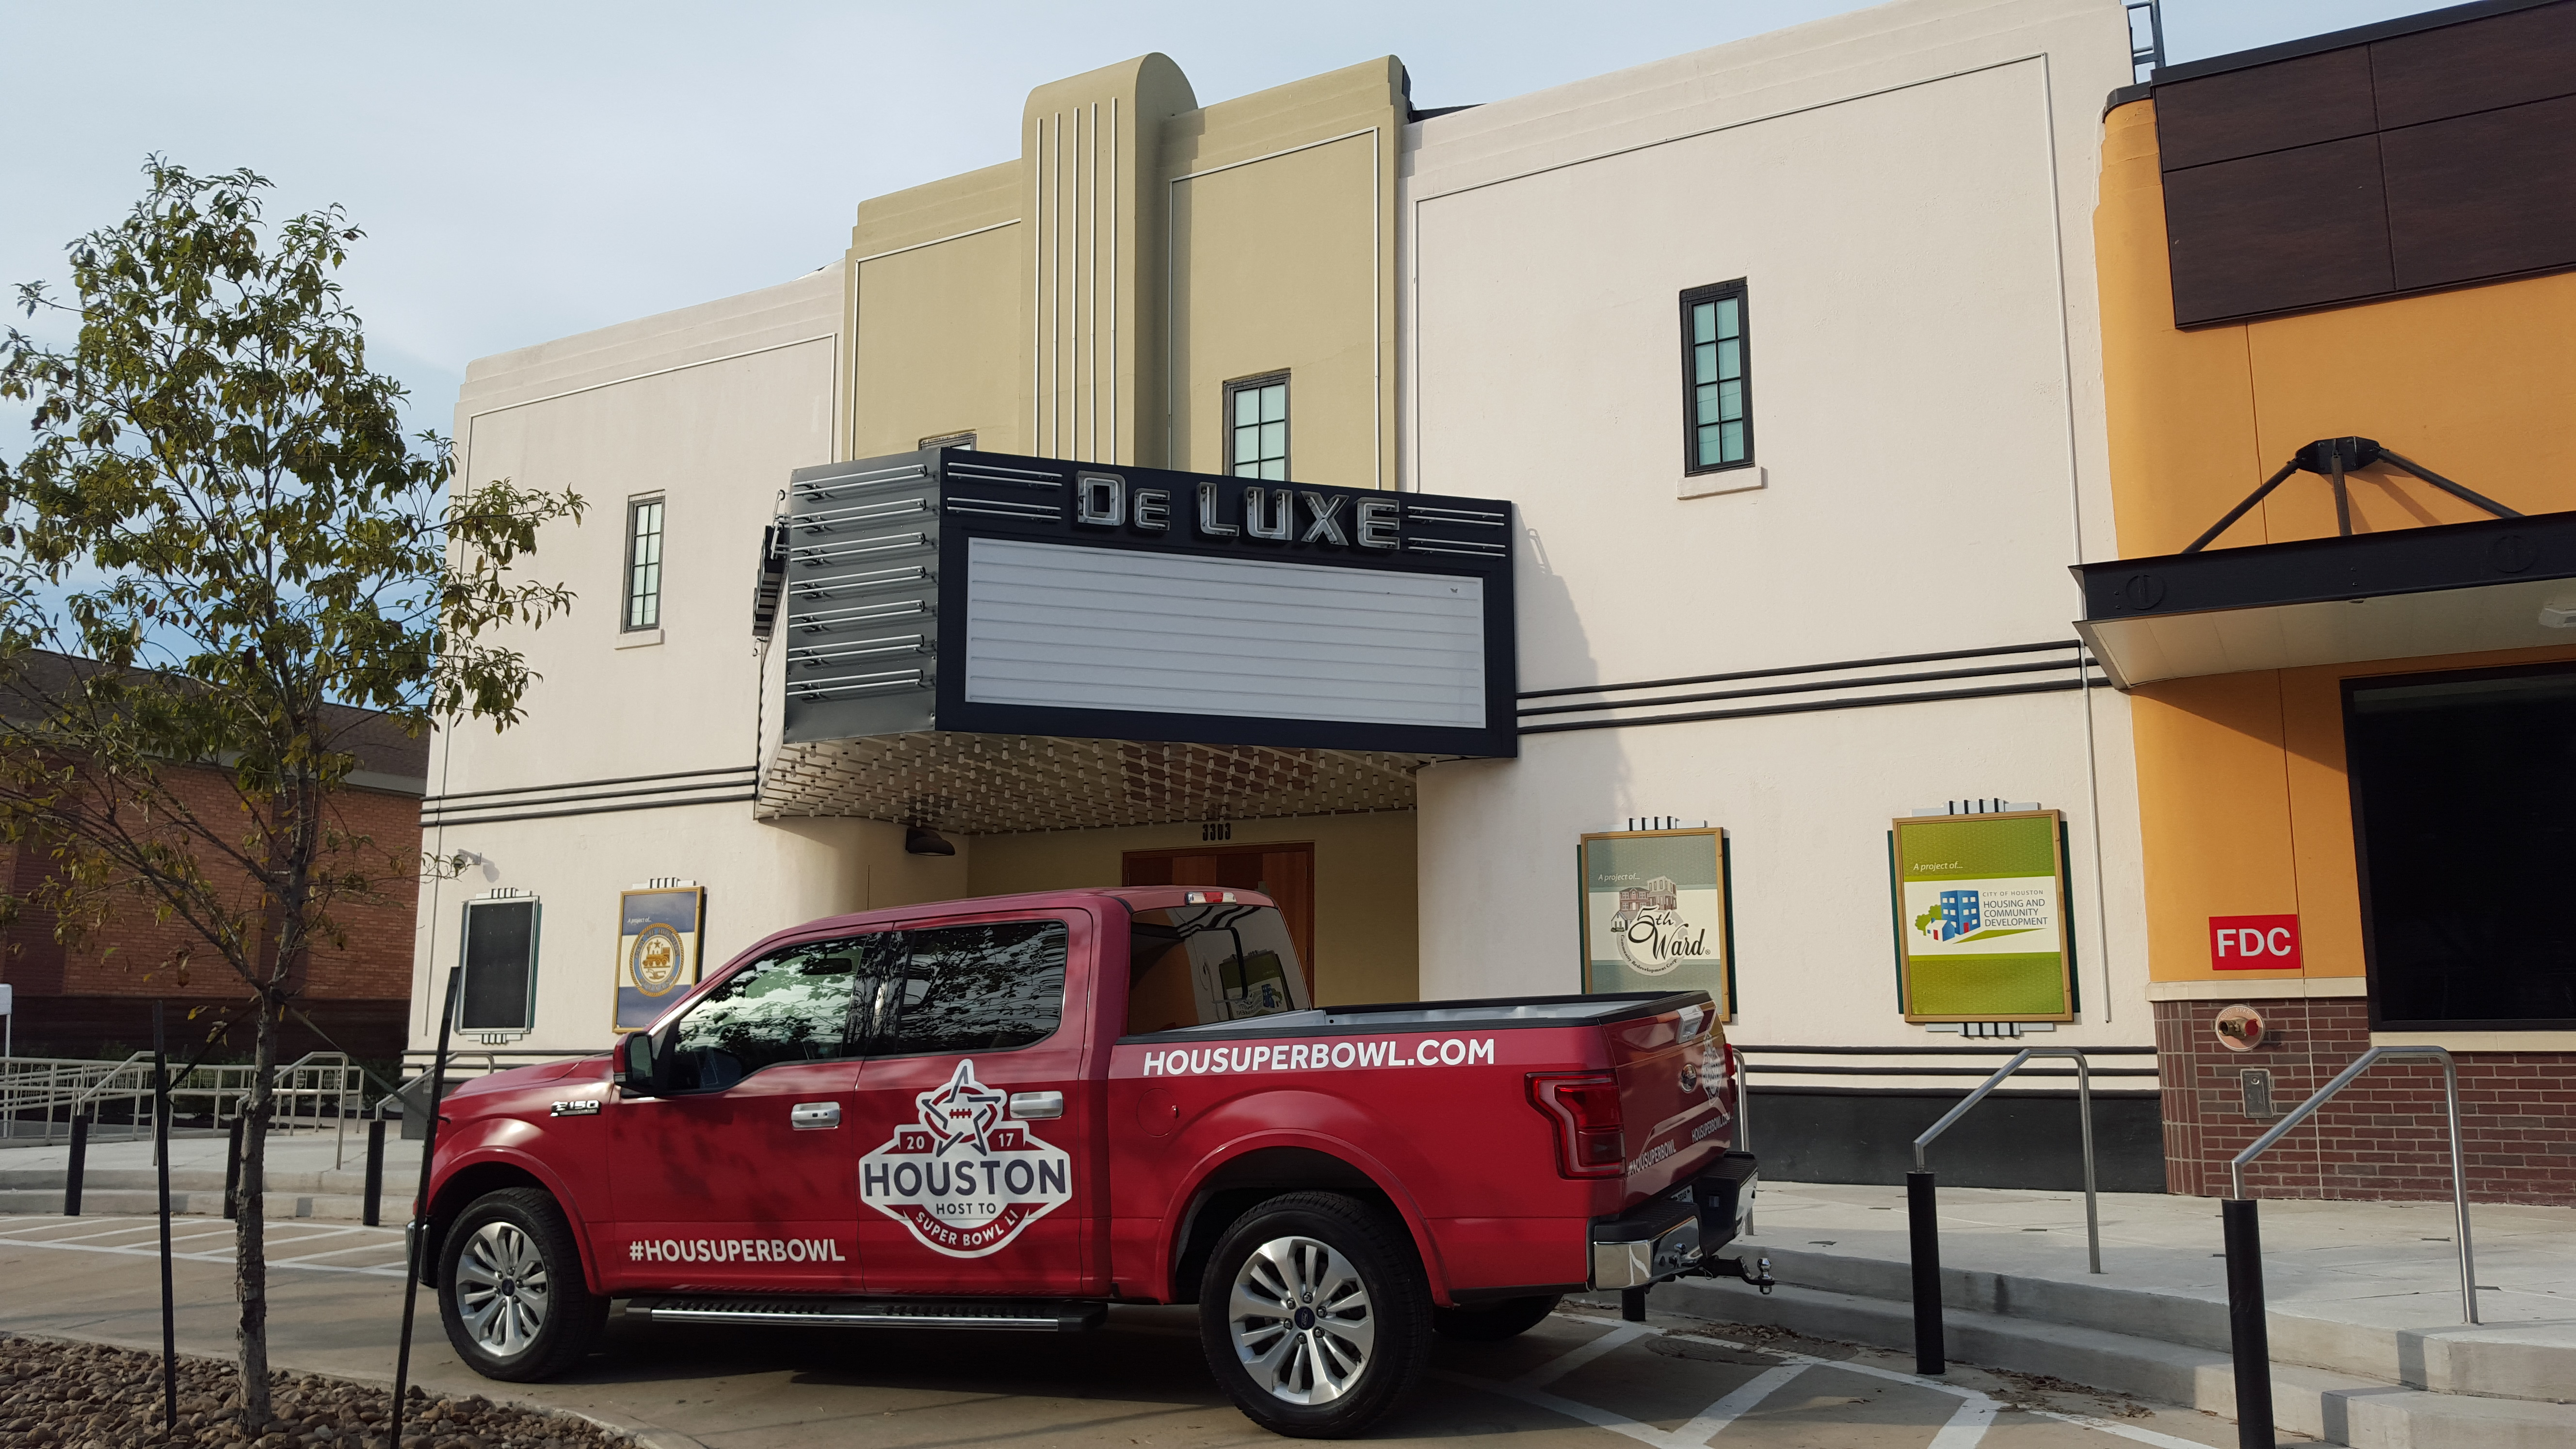 An official Super Bowl 51 vehicle at the Fifth Ward's historic DeLuxe Theatre.